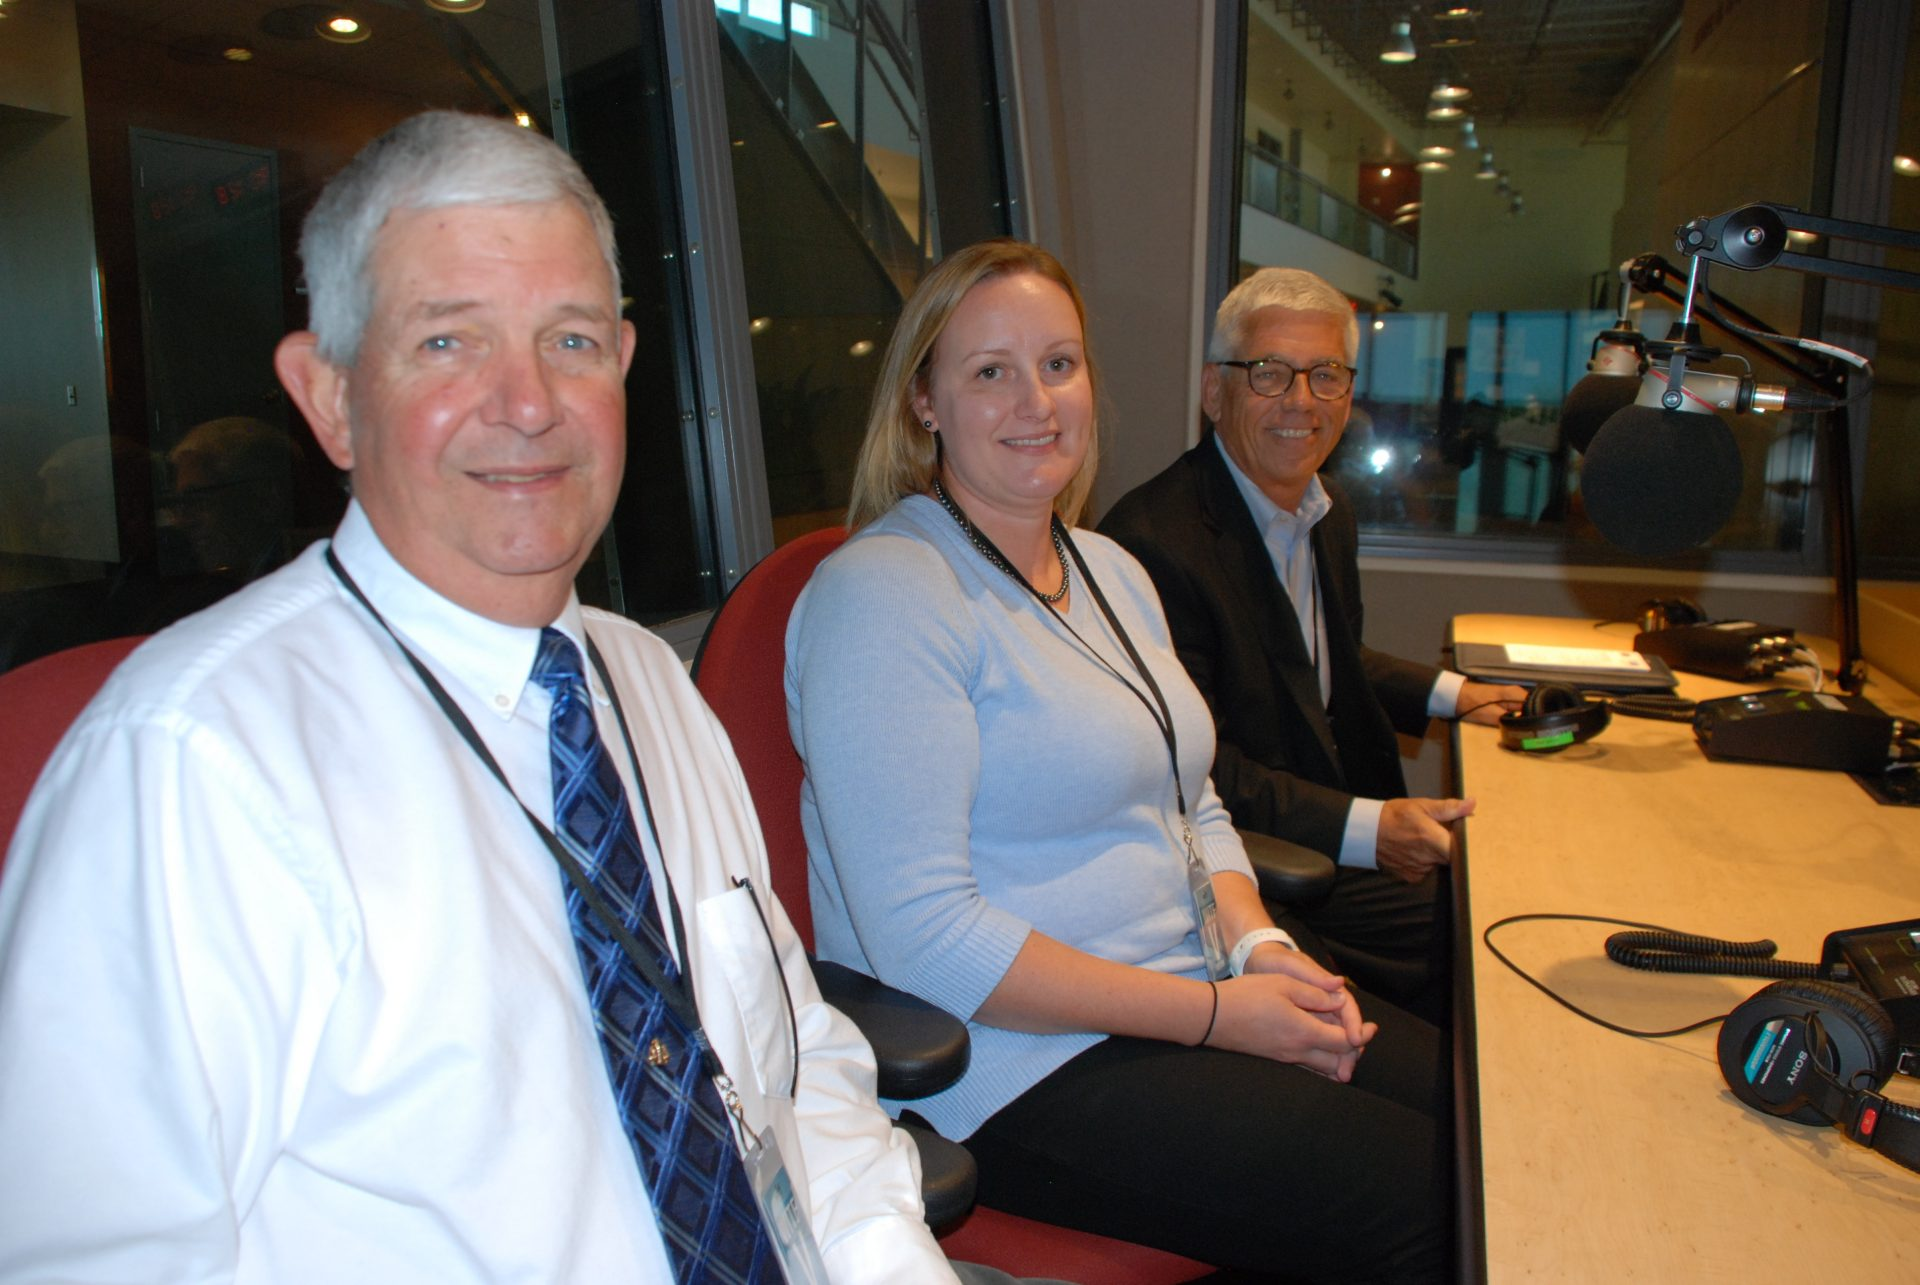 Judge Edward Guido, Jennifer DeBalko, and Art McNulty appear on Smart Talk on September 24, 2019.